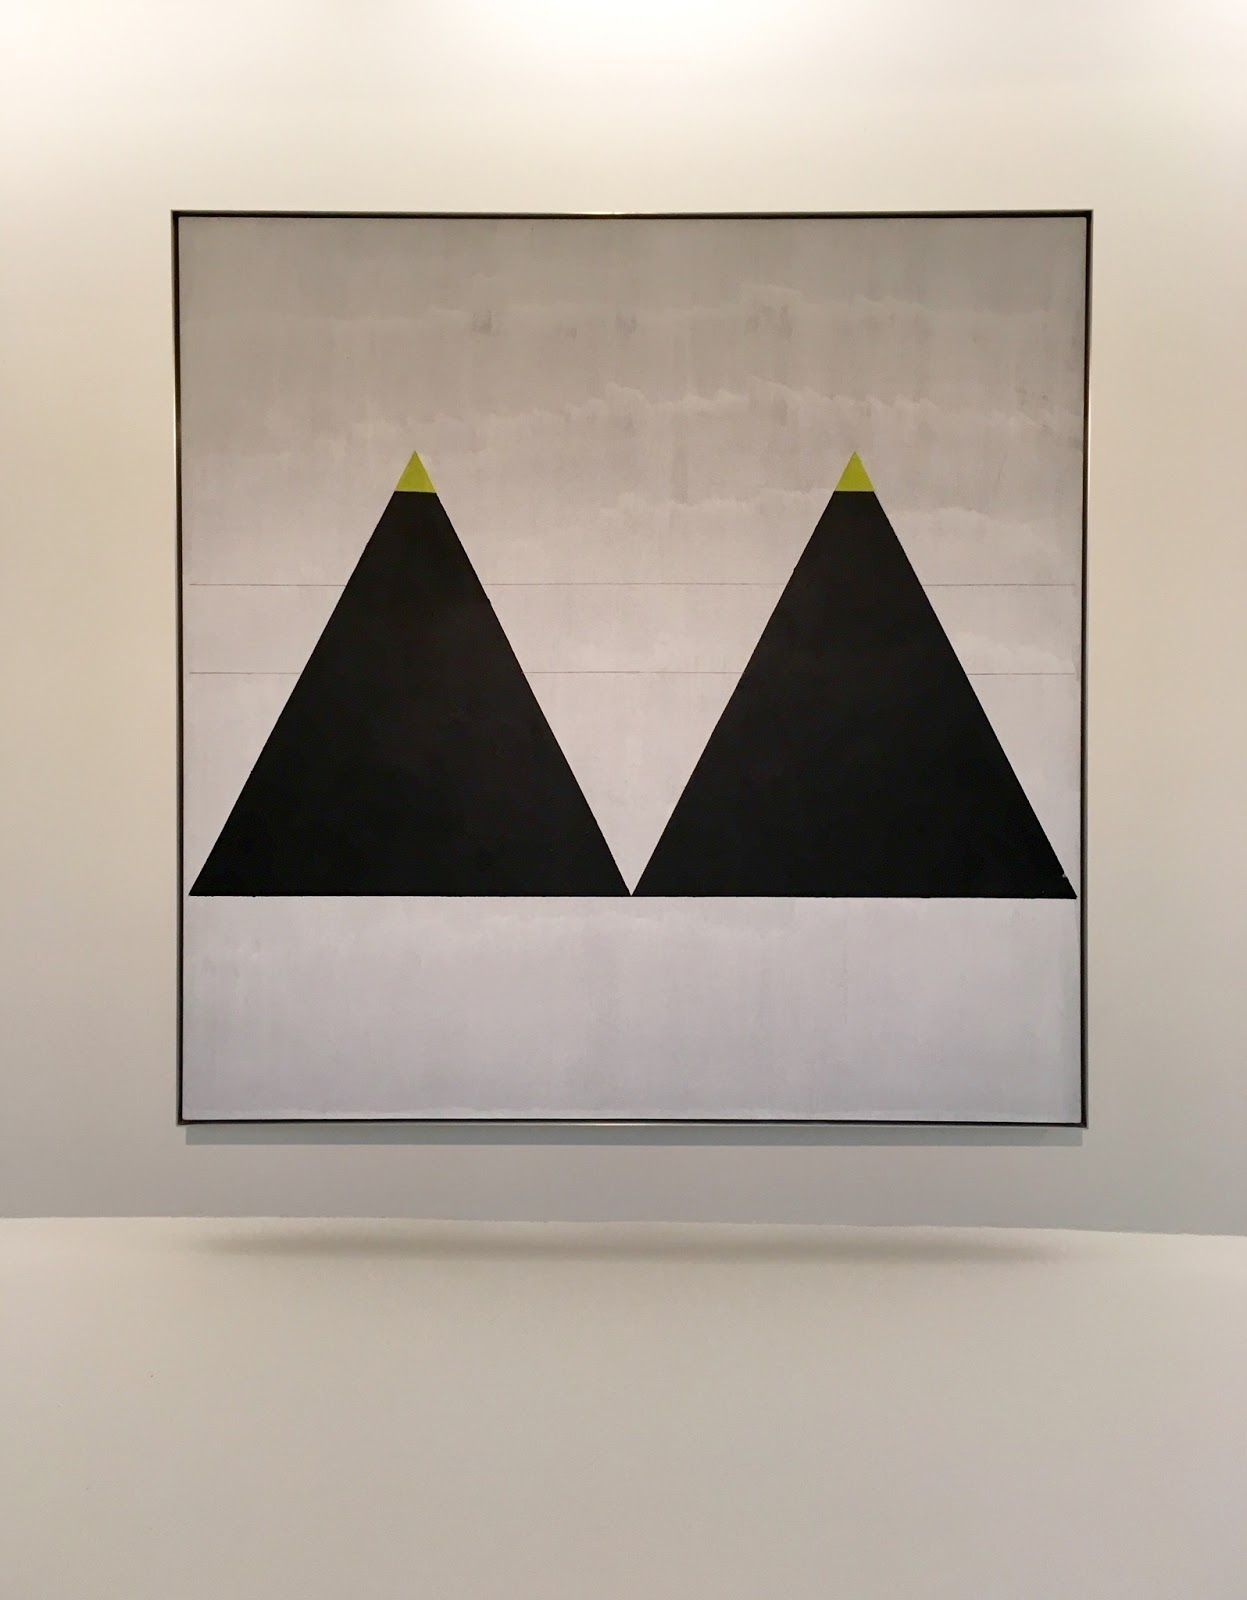 New York City Solomon R. Guggenheim Museum, Agnes Martin exhibition at the Solomon R. Guggenheim Museum